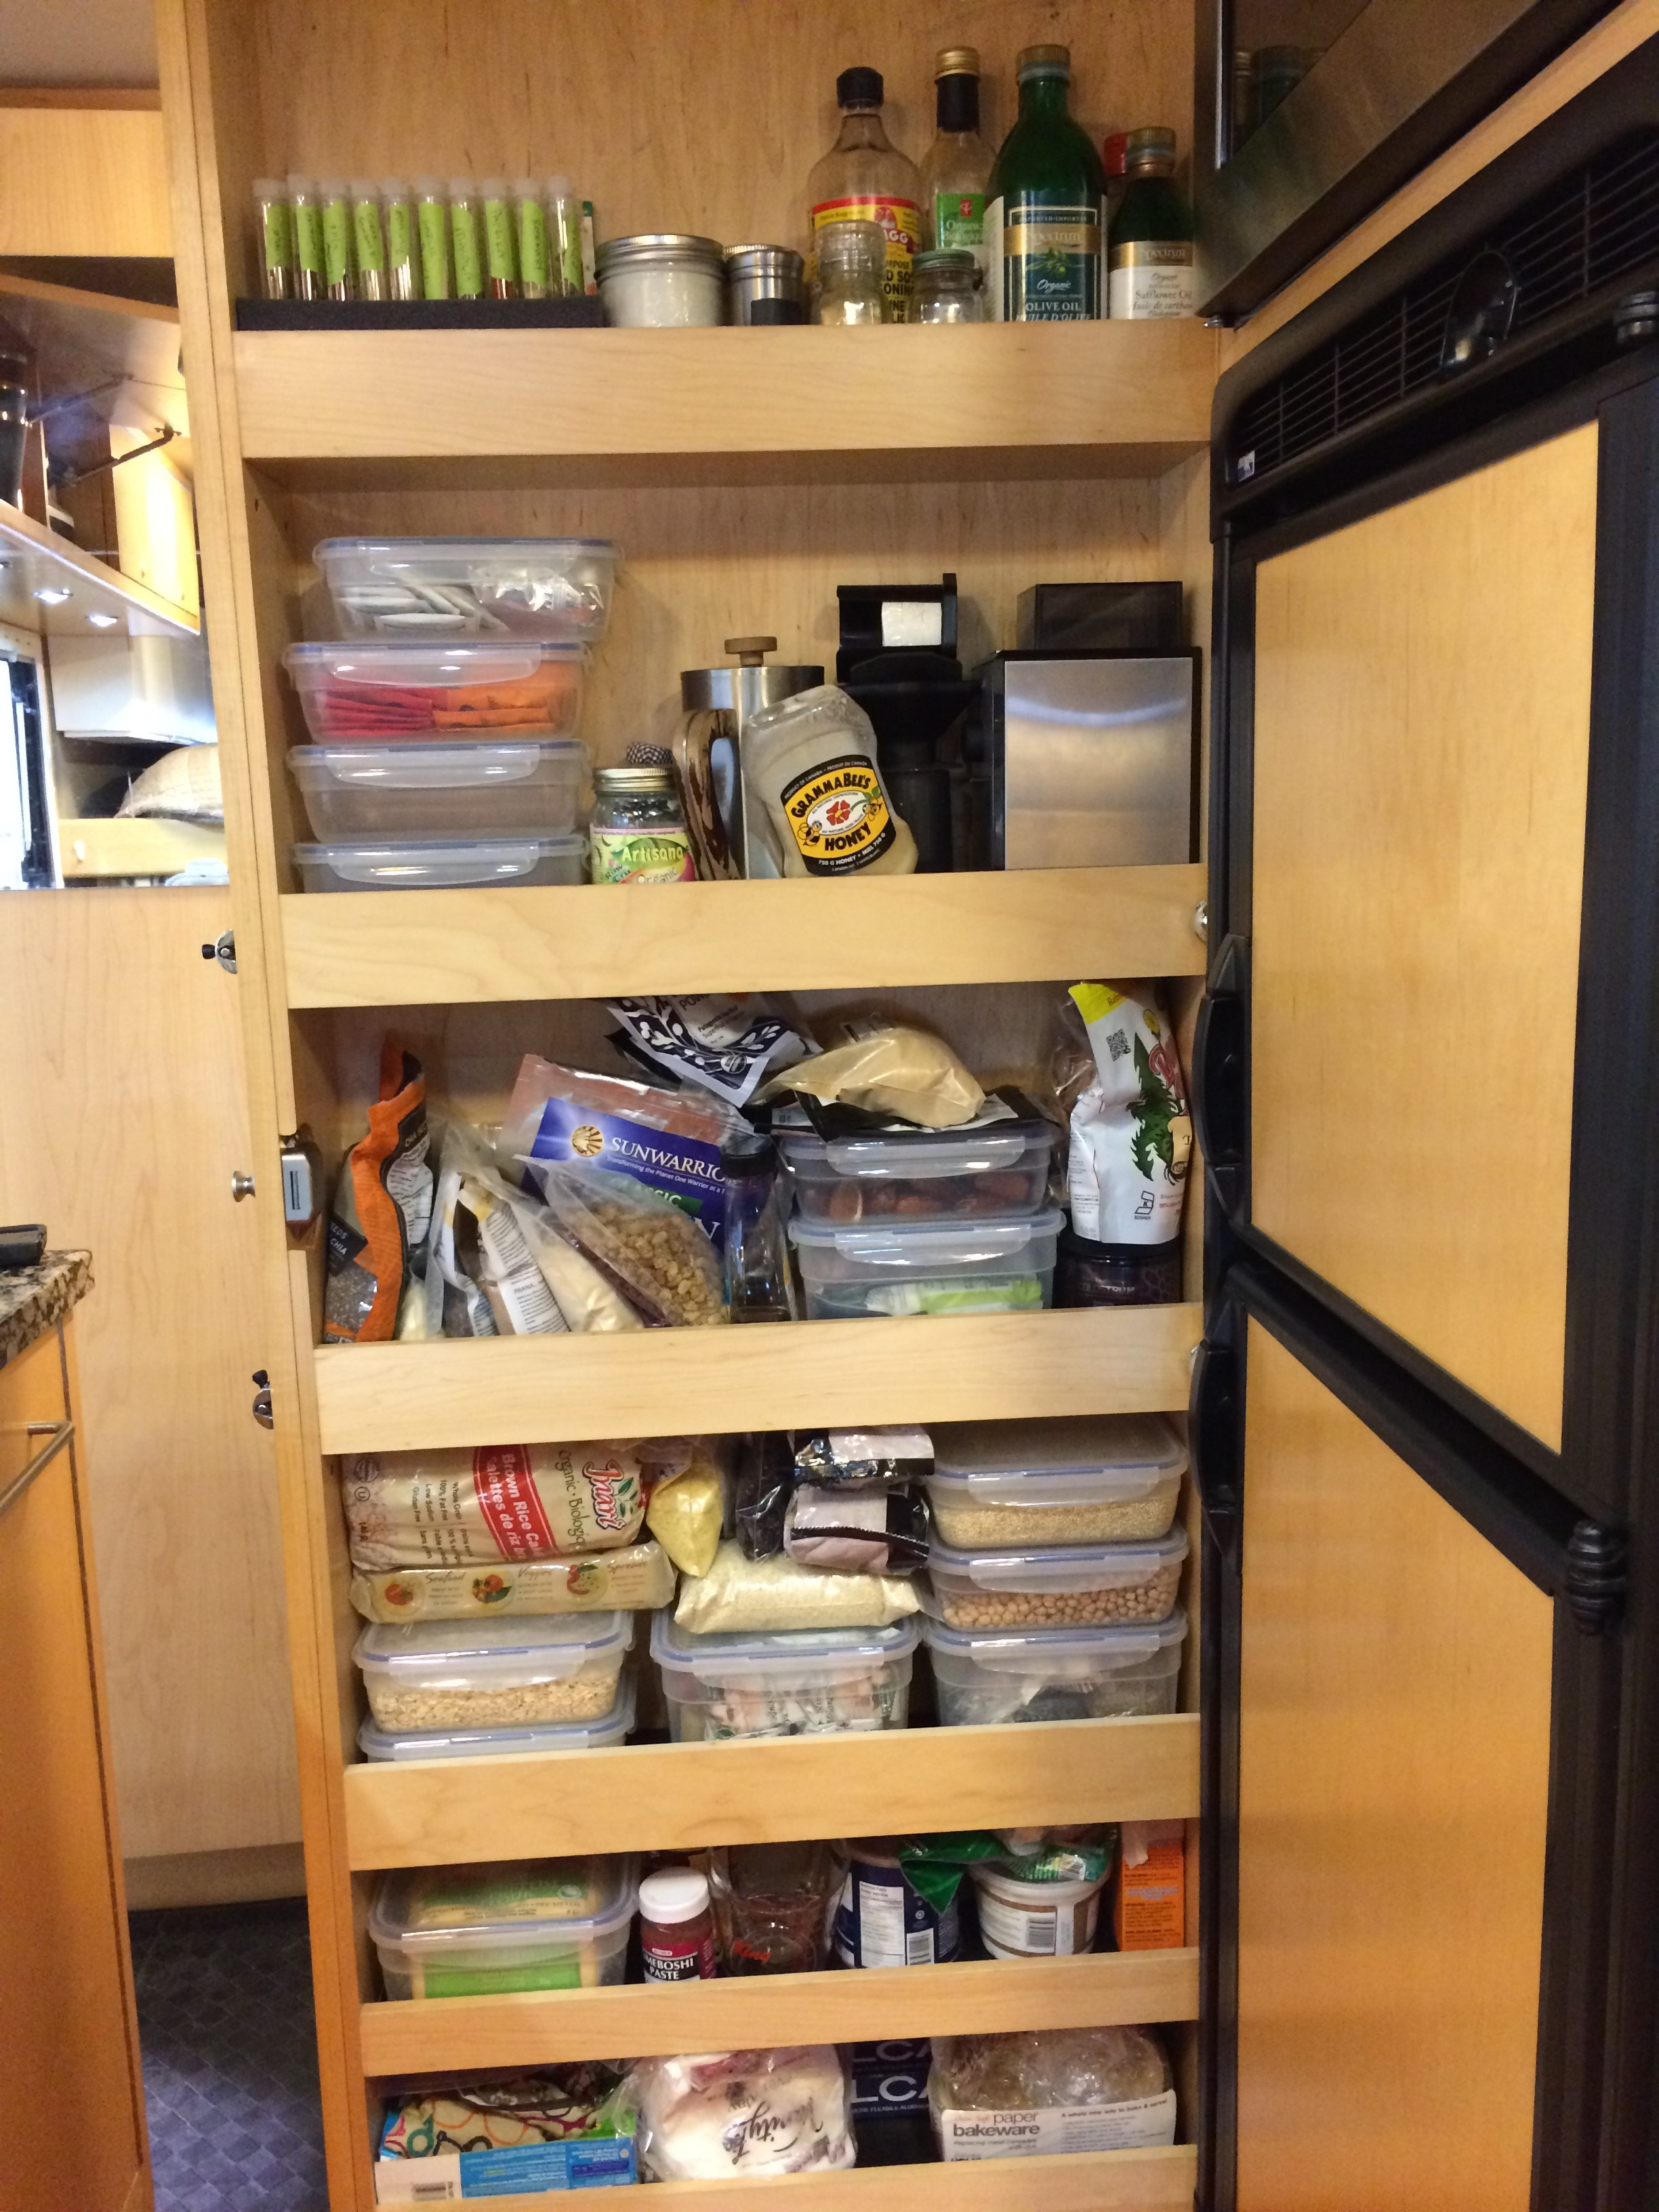 Our new pantry!